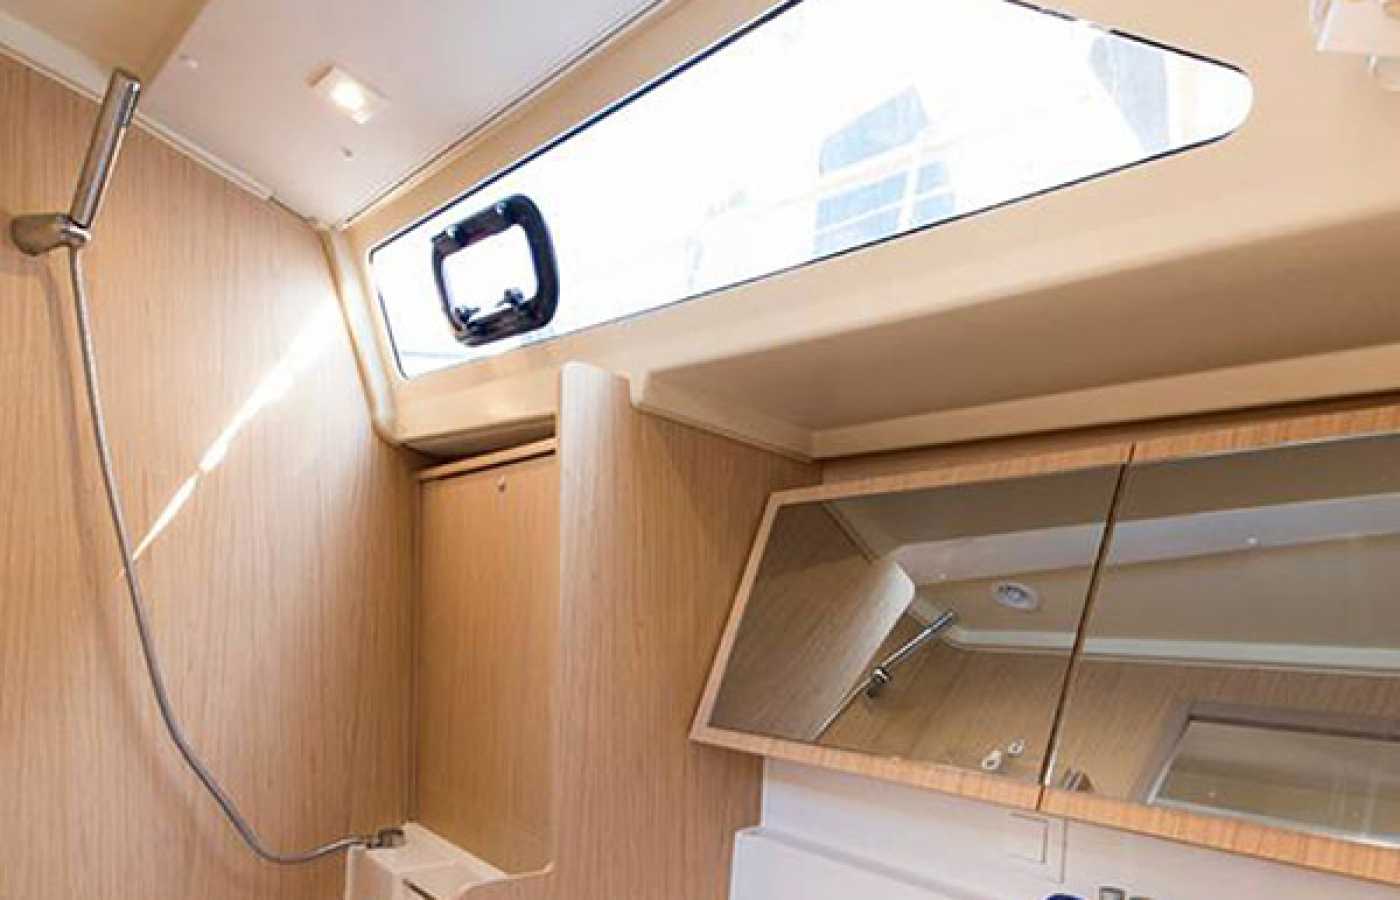 The storage area of inside the bathroom on the boat